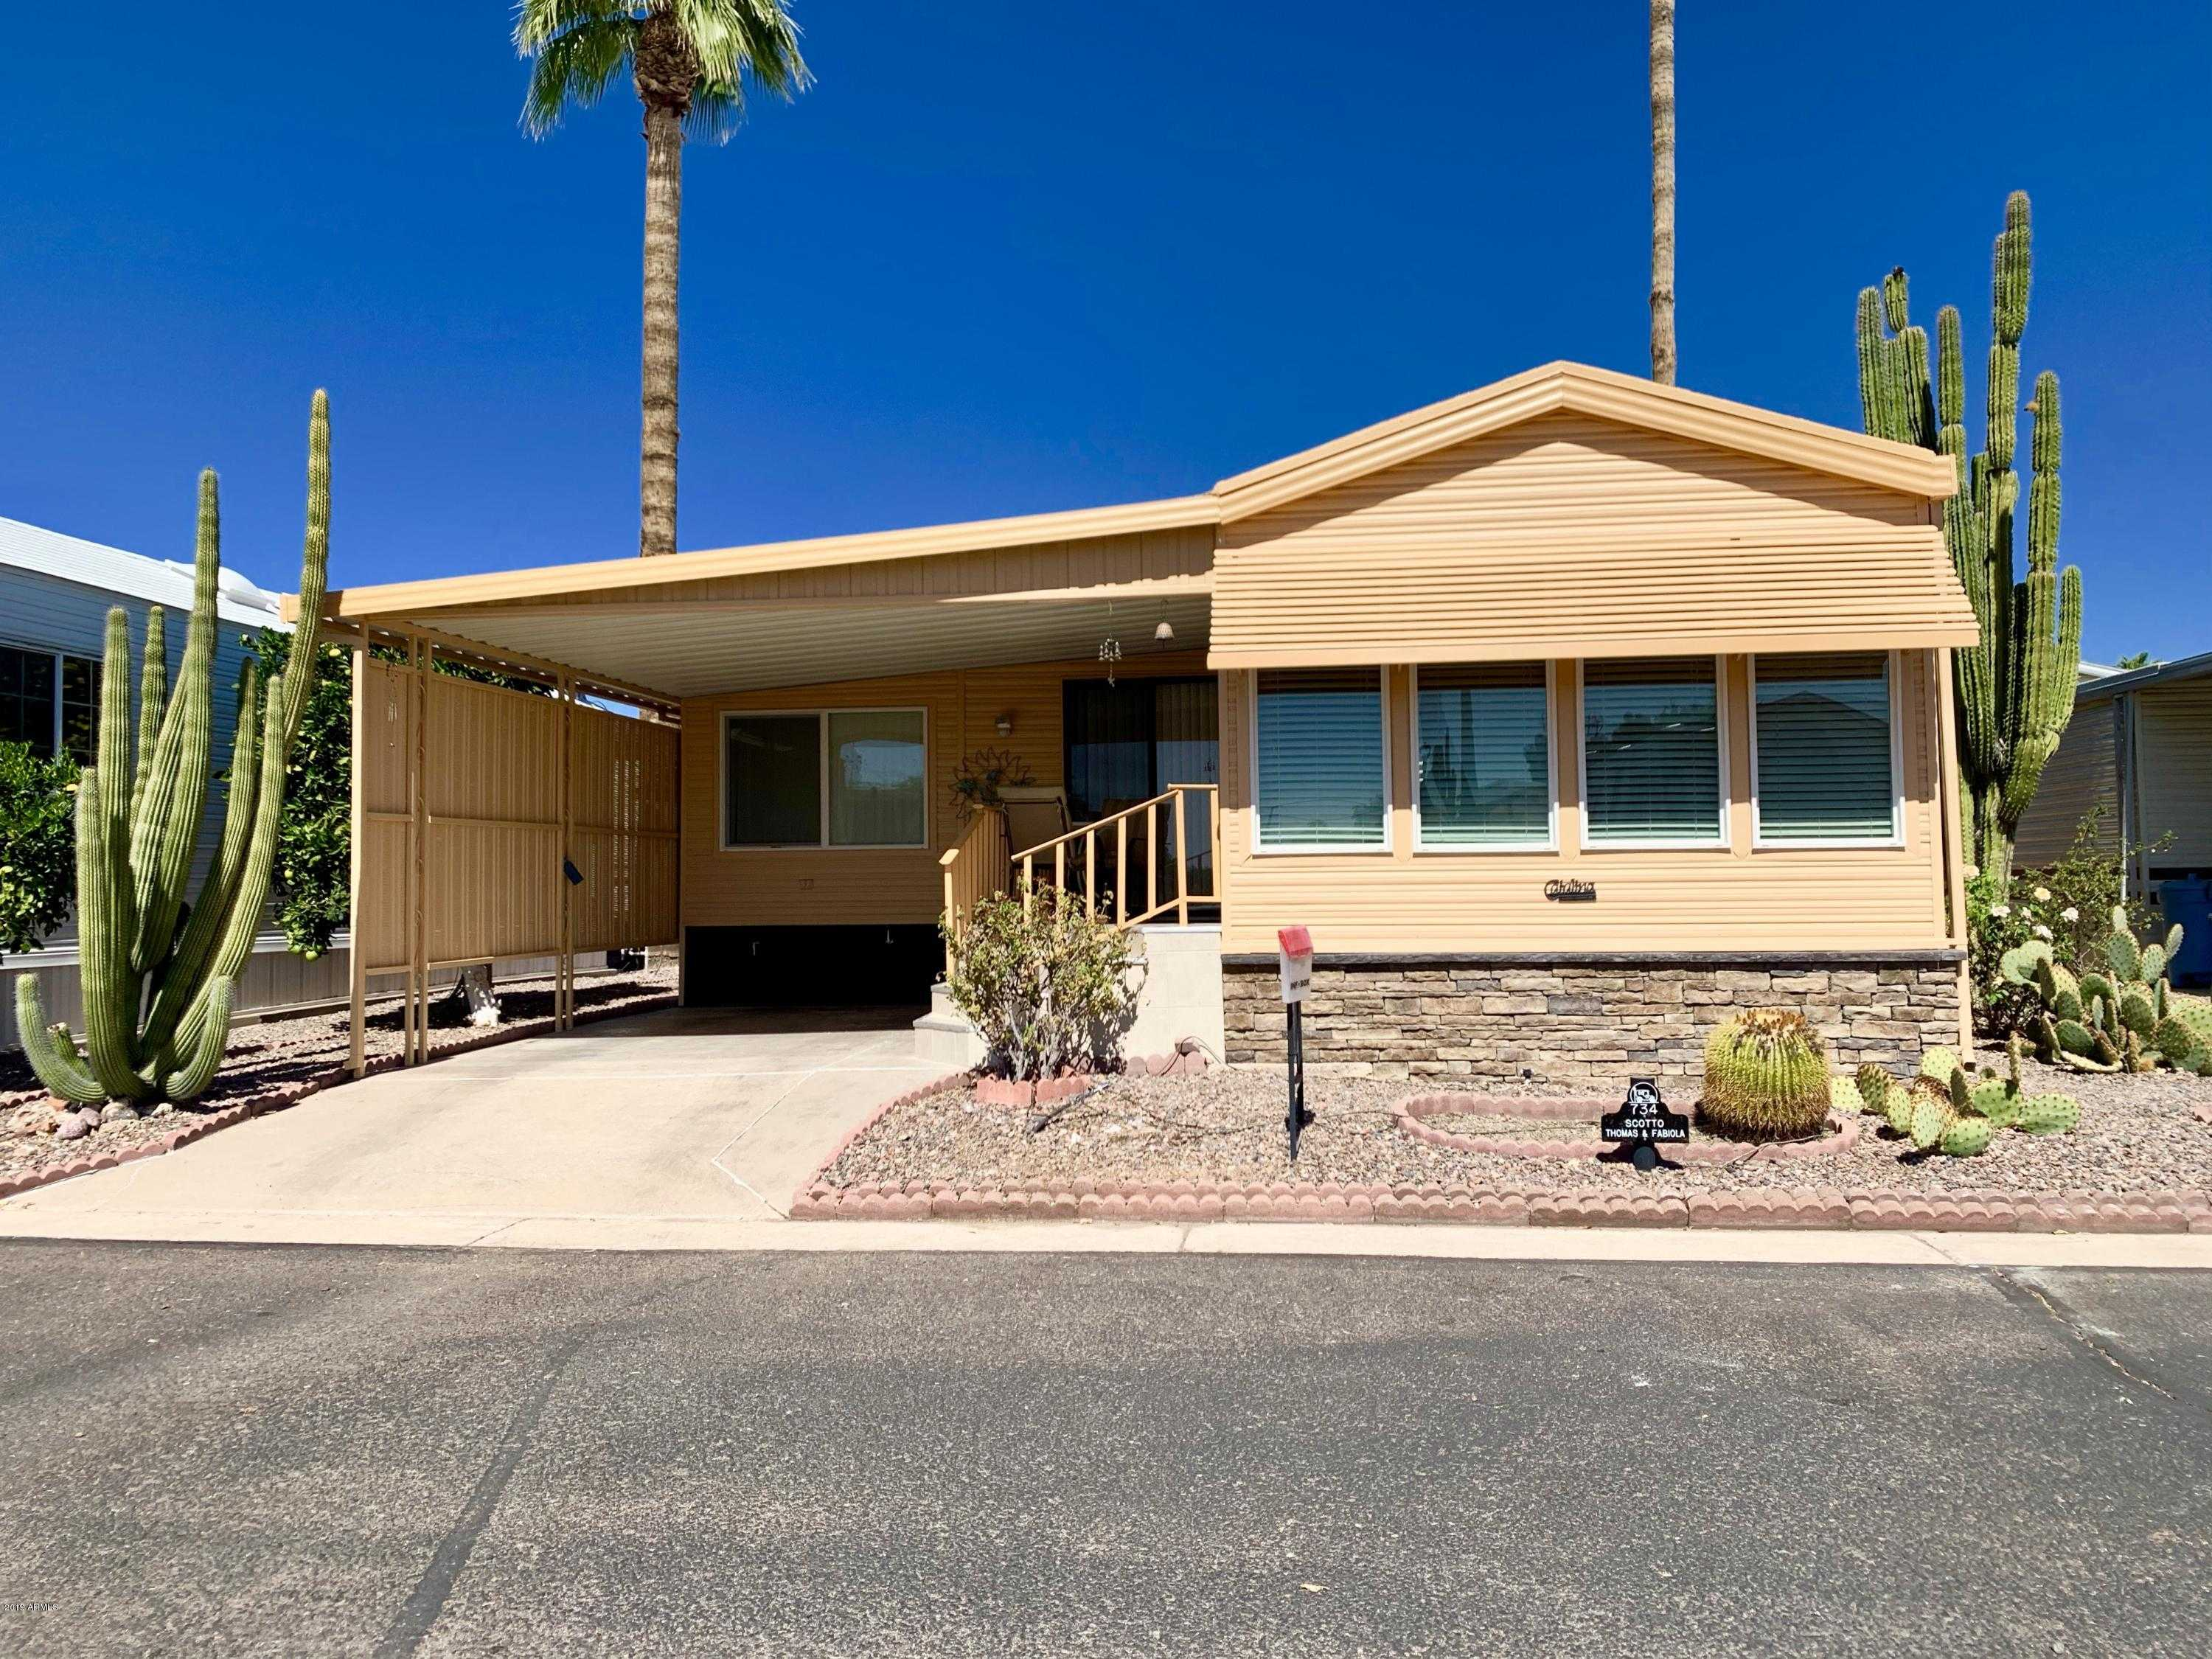 $95,900 - 1Br/1Ba -  for Sale in Carriage Manor Rv Resort Lot 1-901 & Trs, Mesa